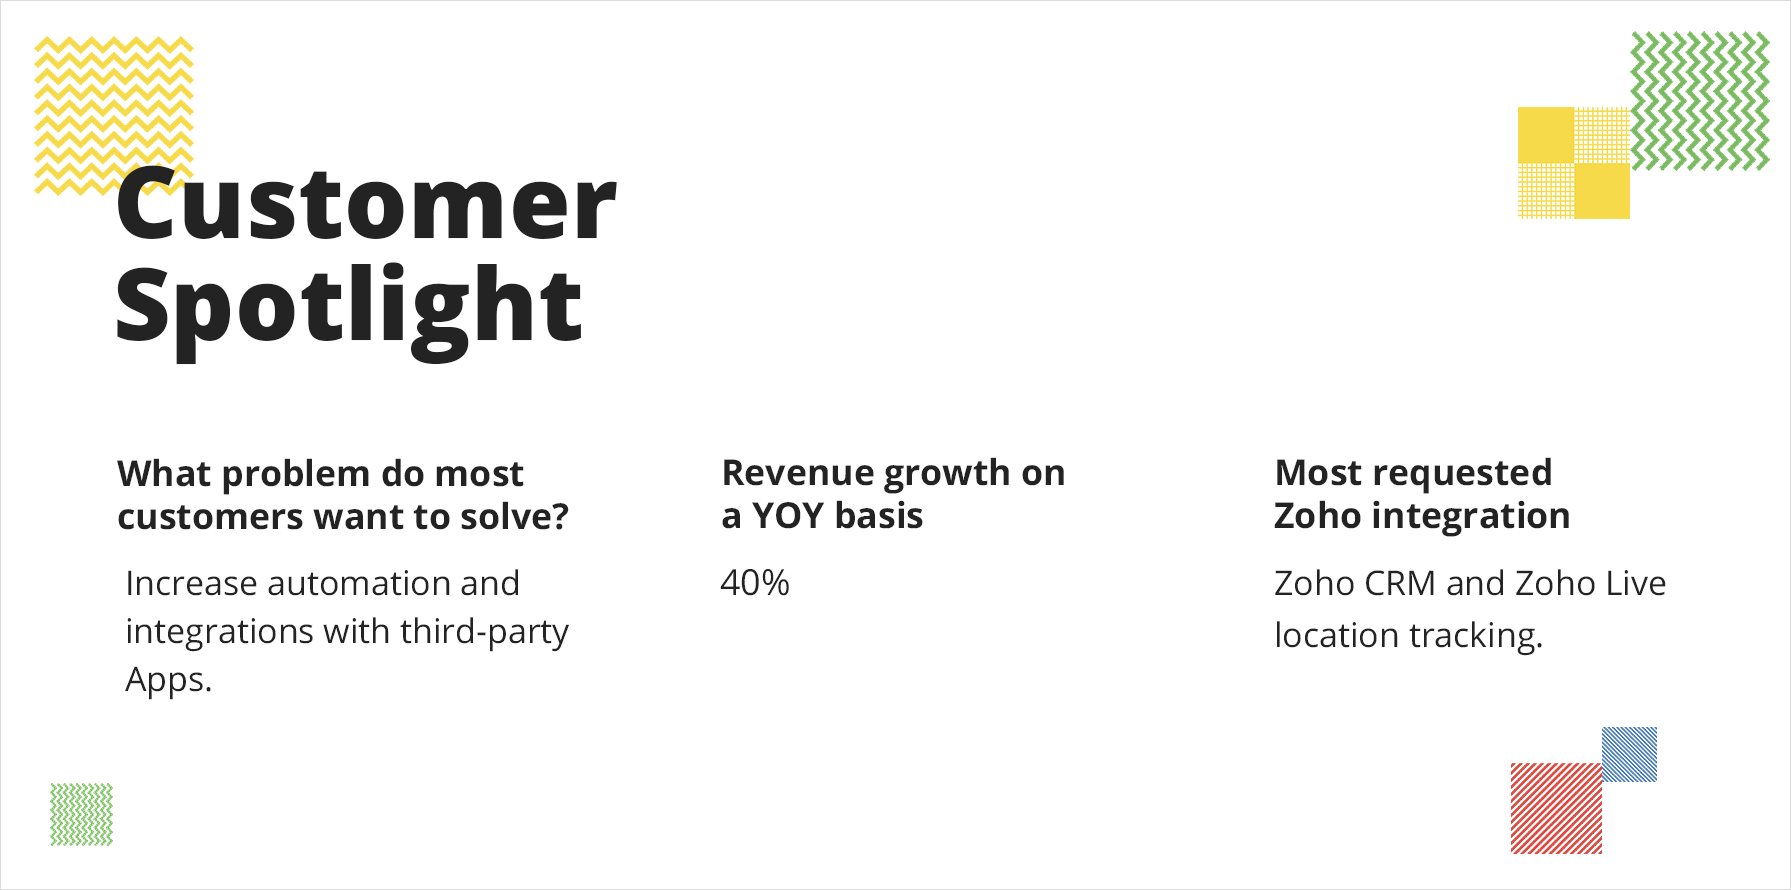 Preferences of the customers using Zoho products.